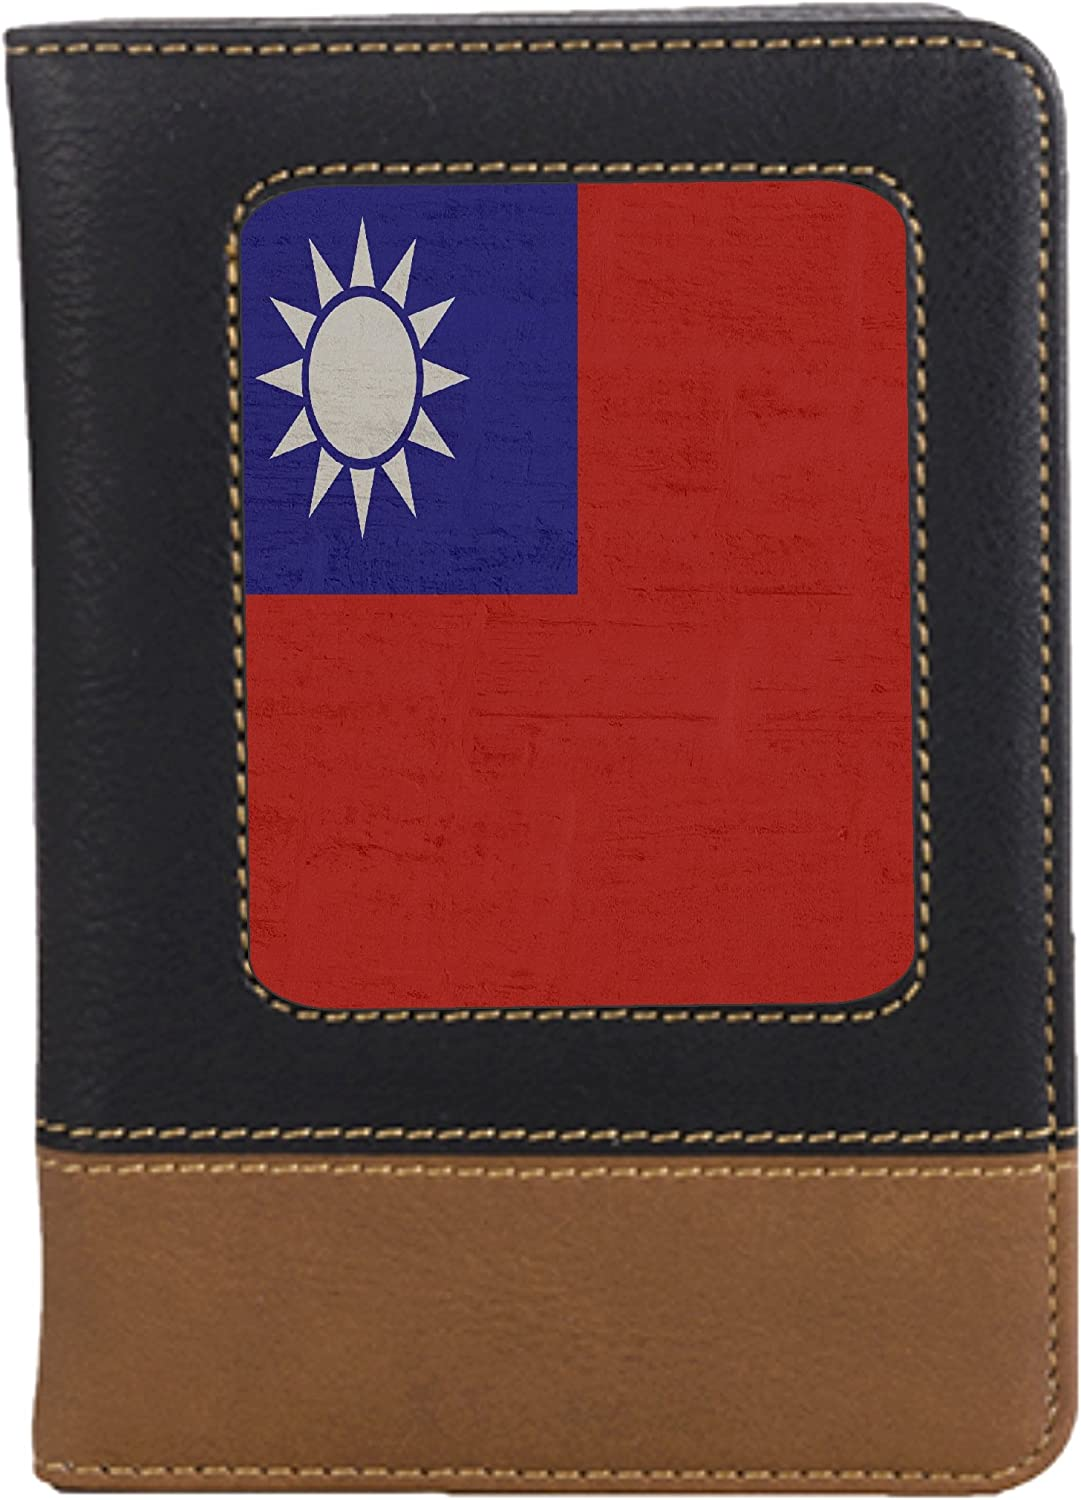 Taiwan Flag Leatherette Passport Wallet Style Case Cover For Travel